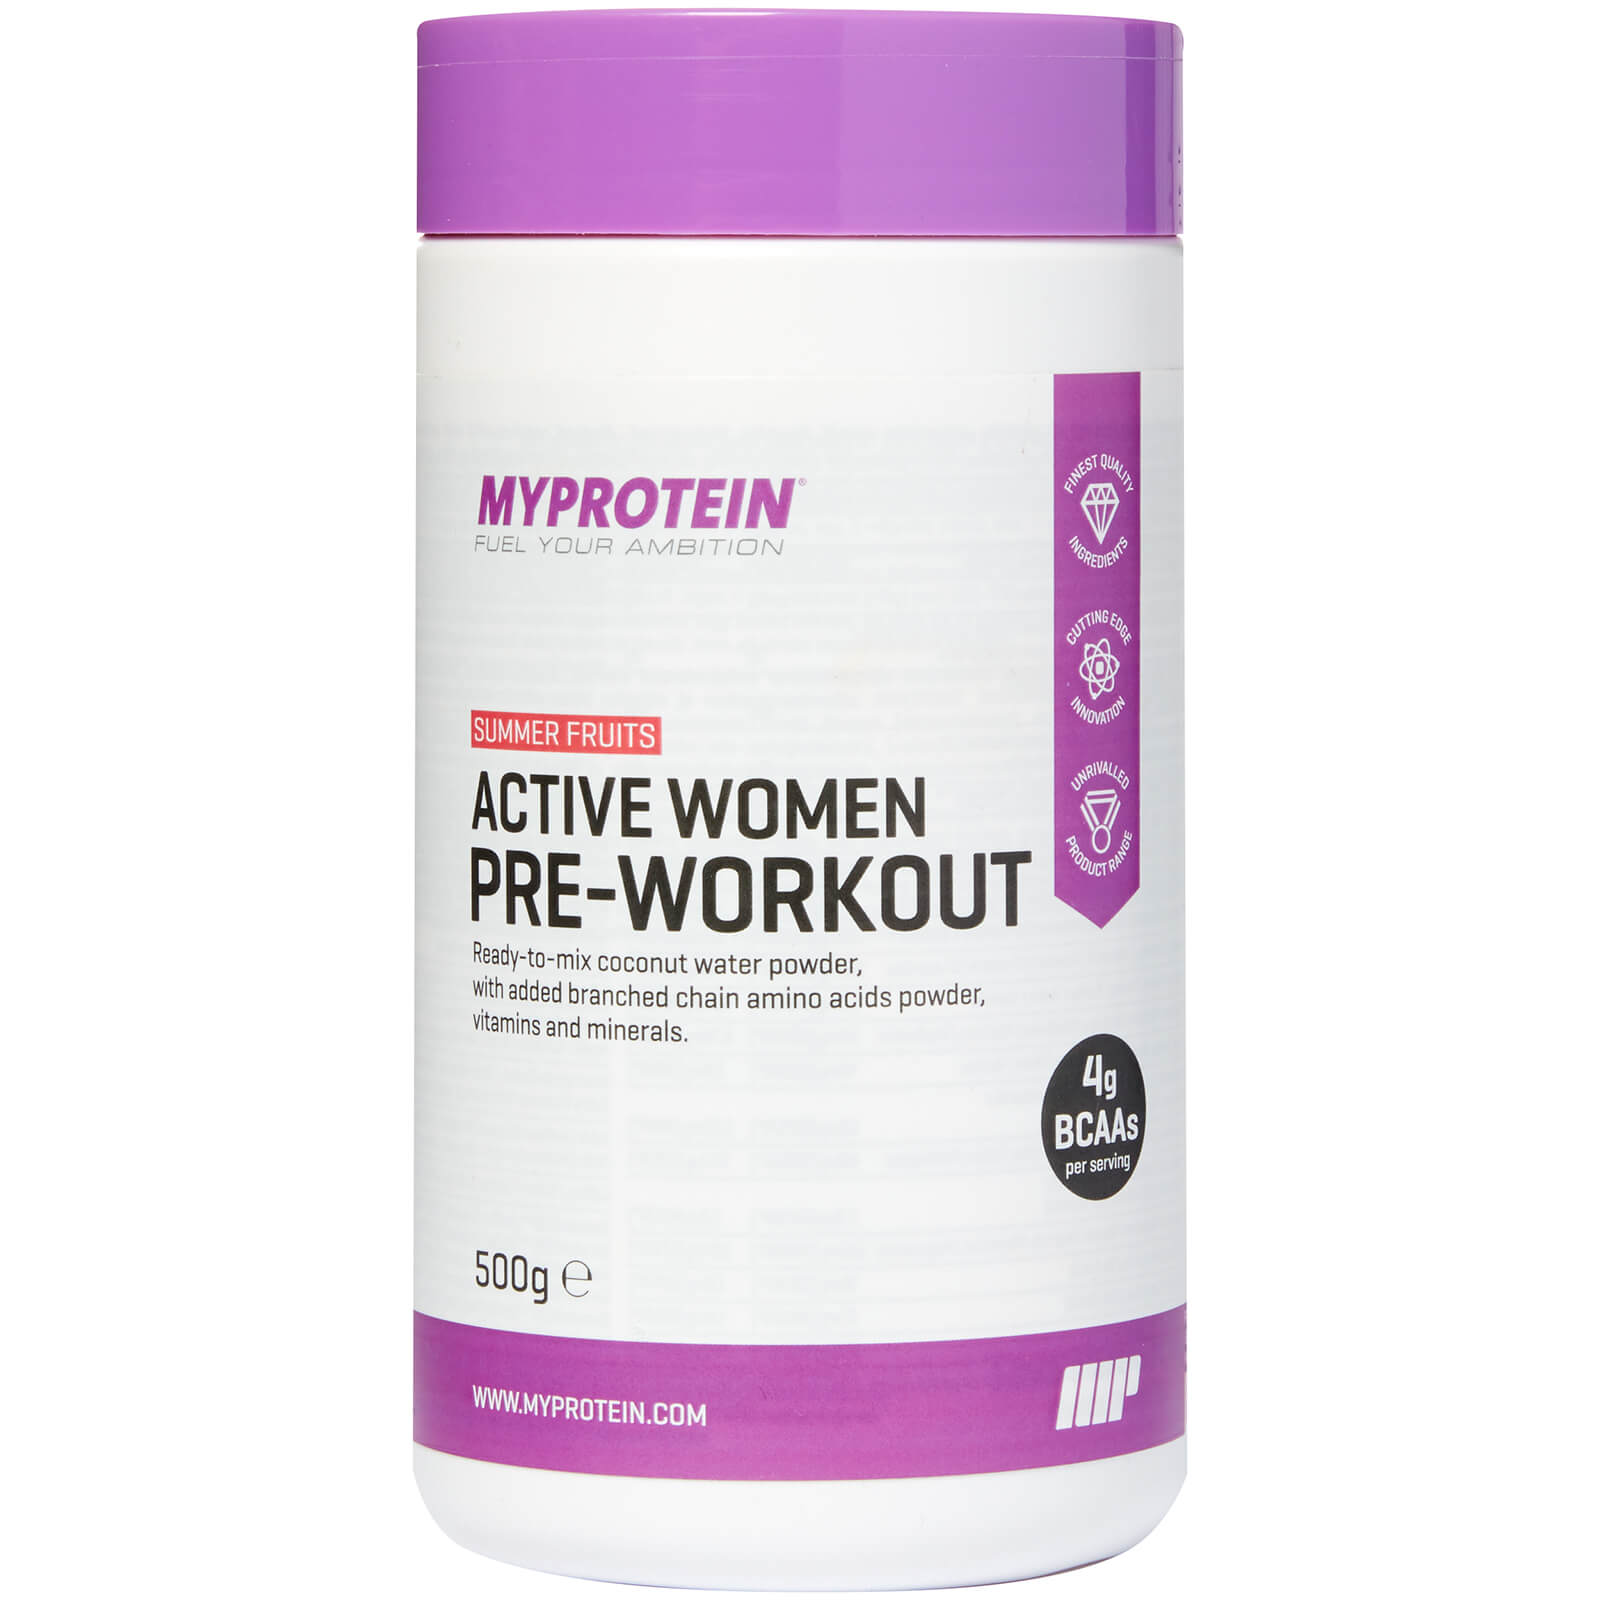 Active Women Pre-Workout, 500g, Cranberry and Pomegranate